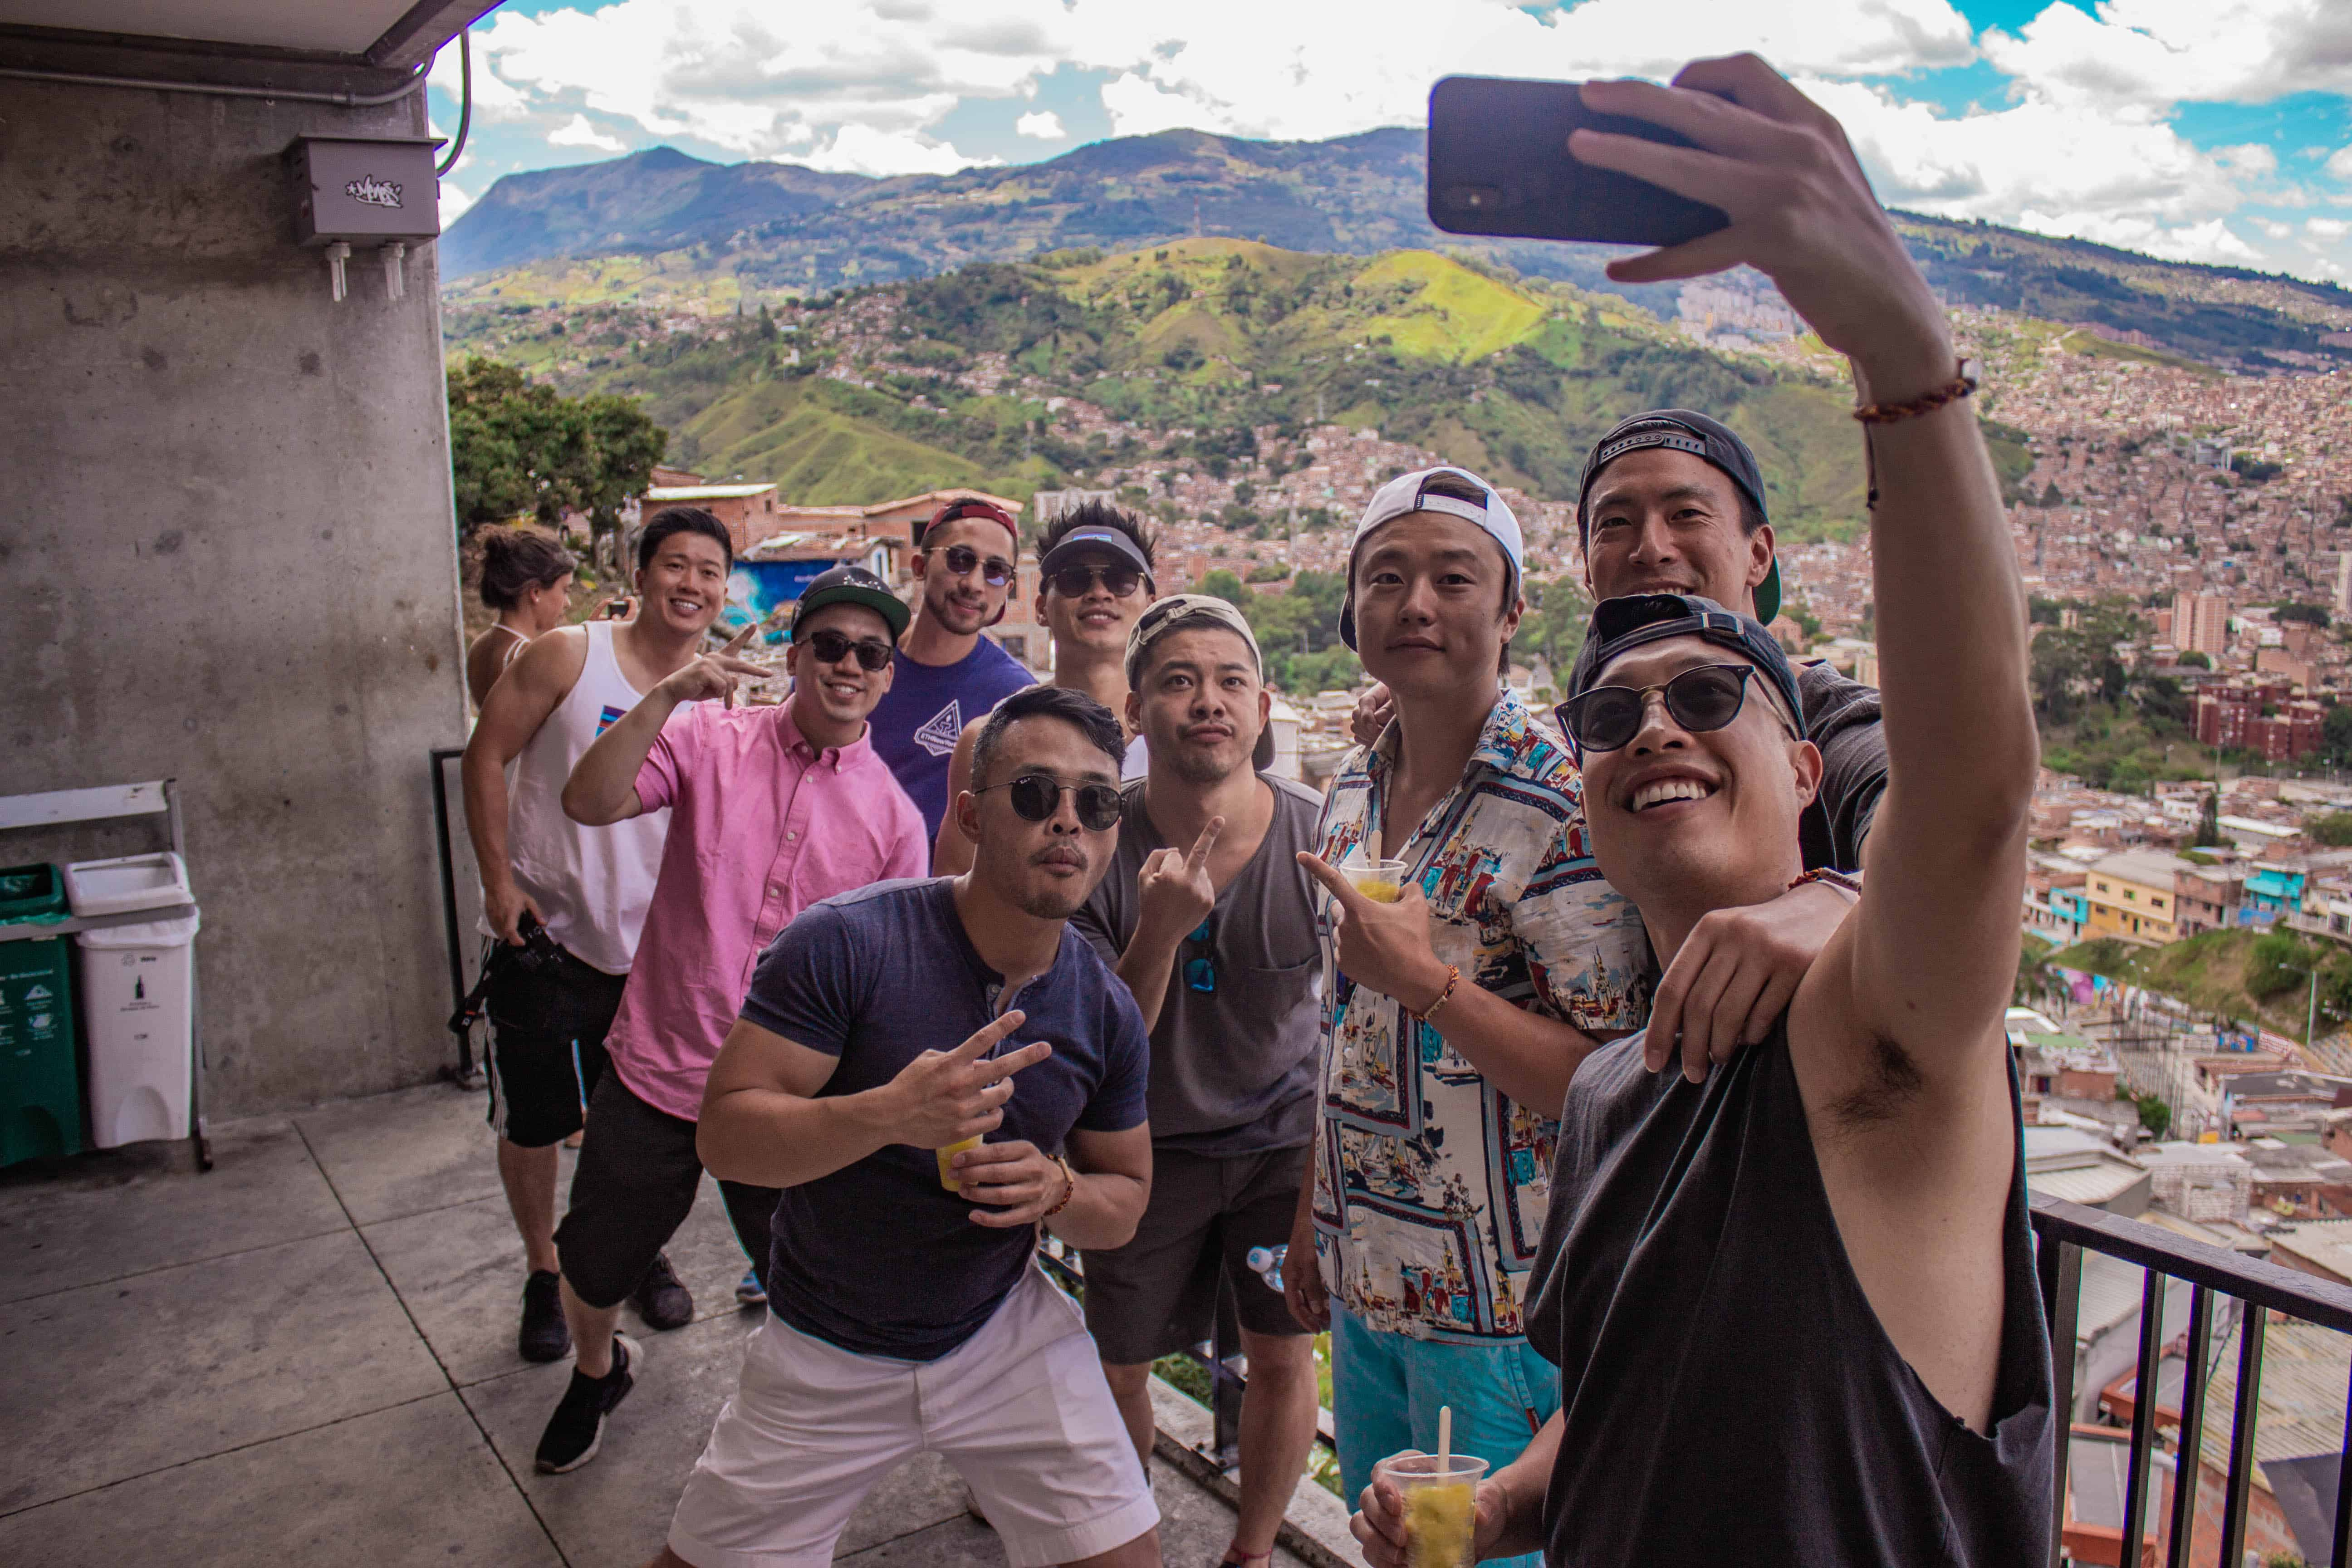 5 Simple Tips for a Smooth (yet Epic) Bachelor Party in Medellin